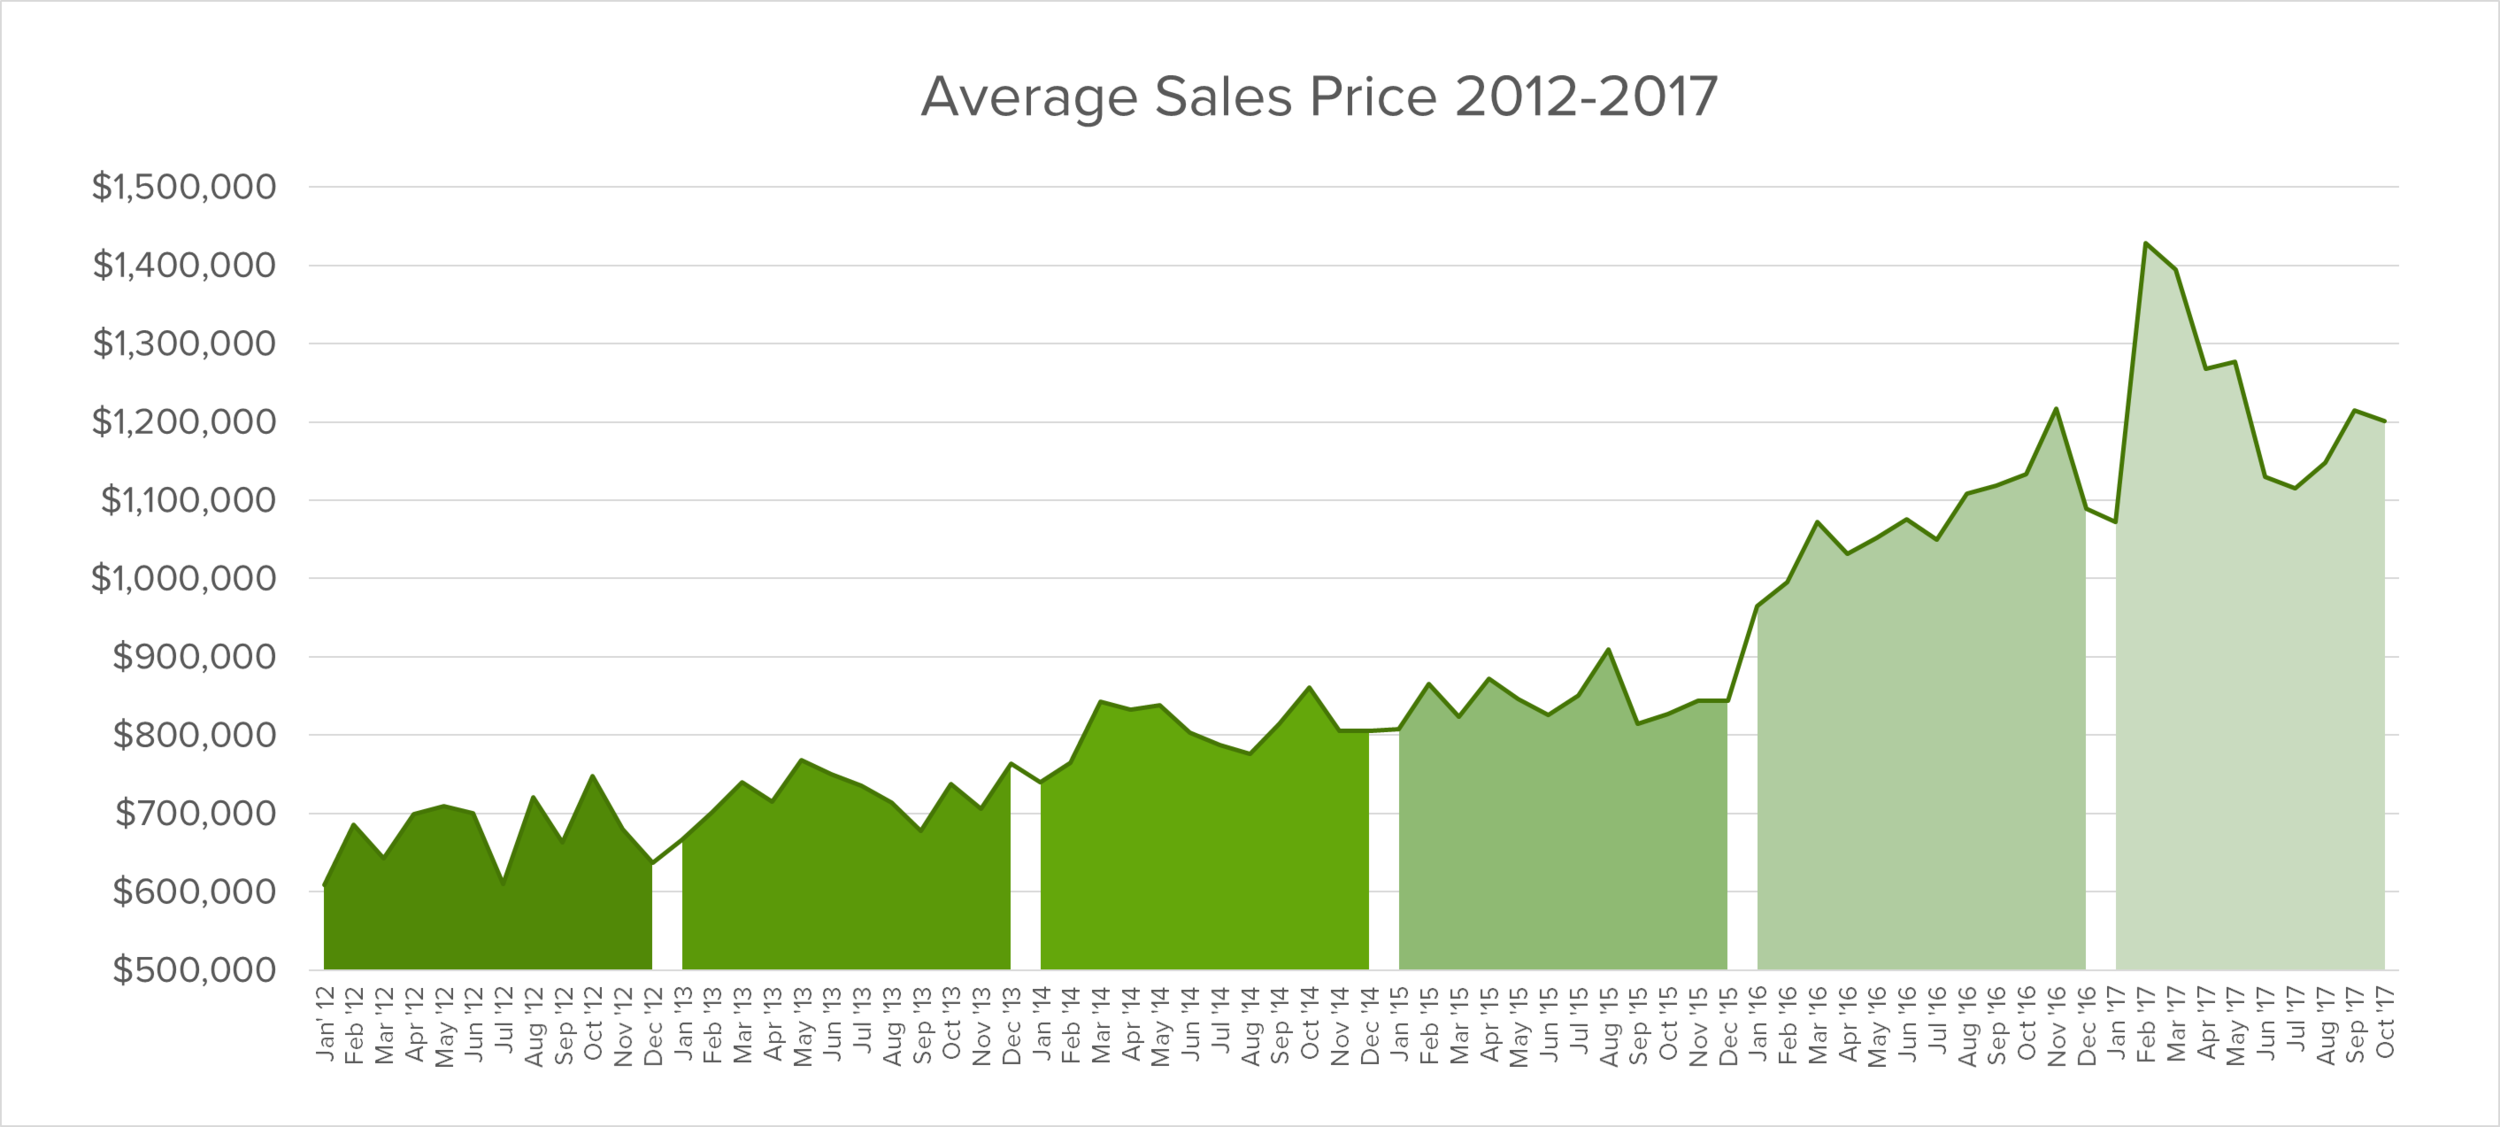 oakville average sales price 2012 to 2017